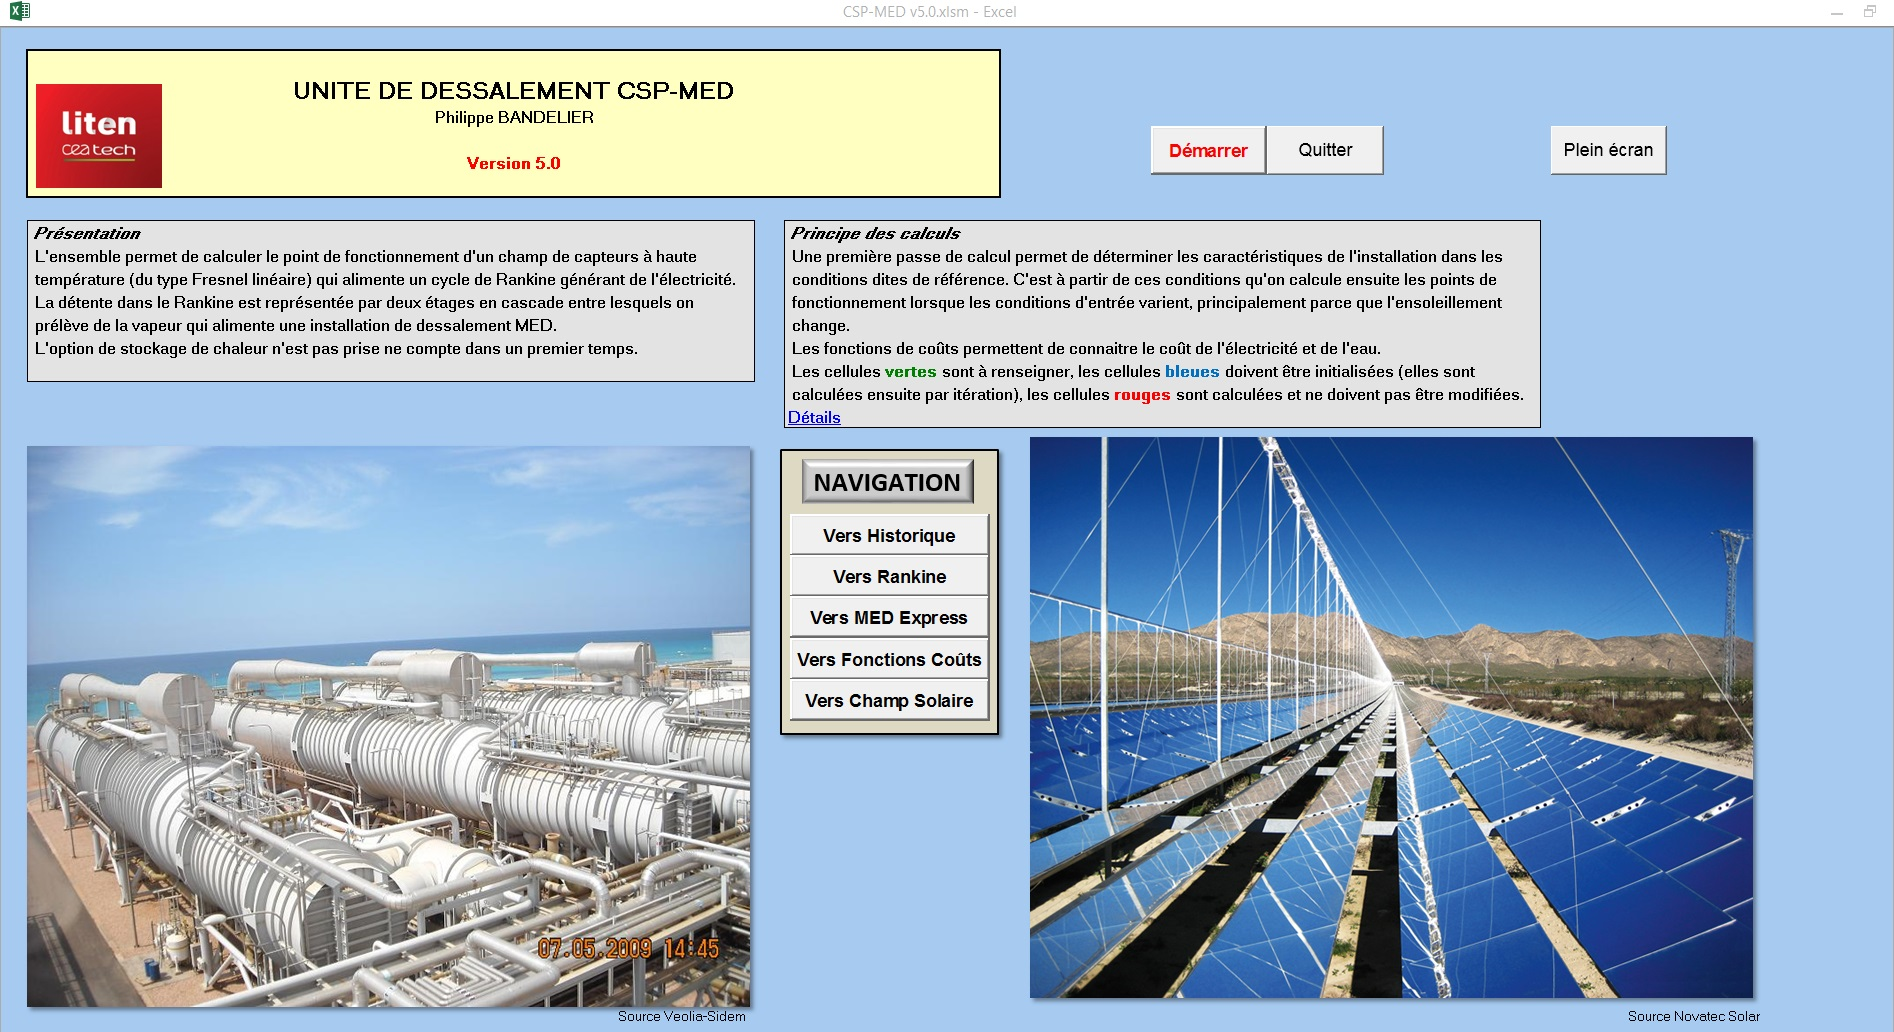 Software to calculate capital and water cost of MED desalination